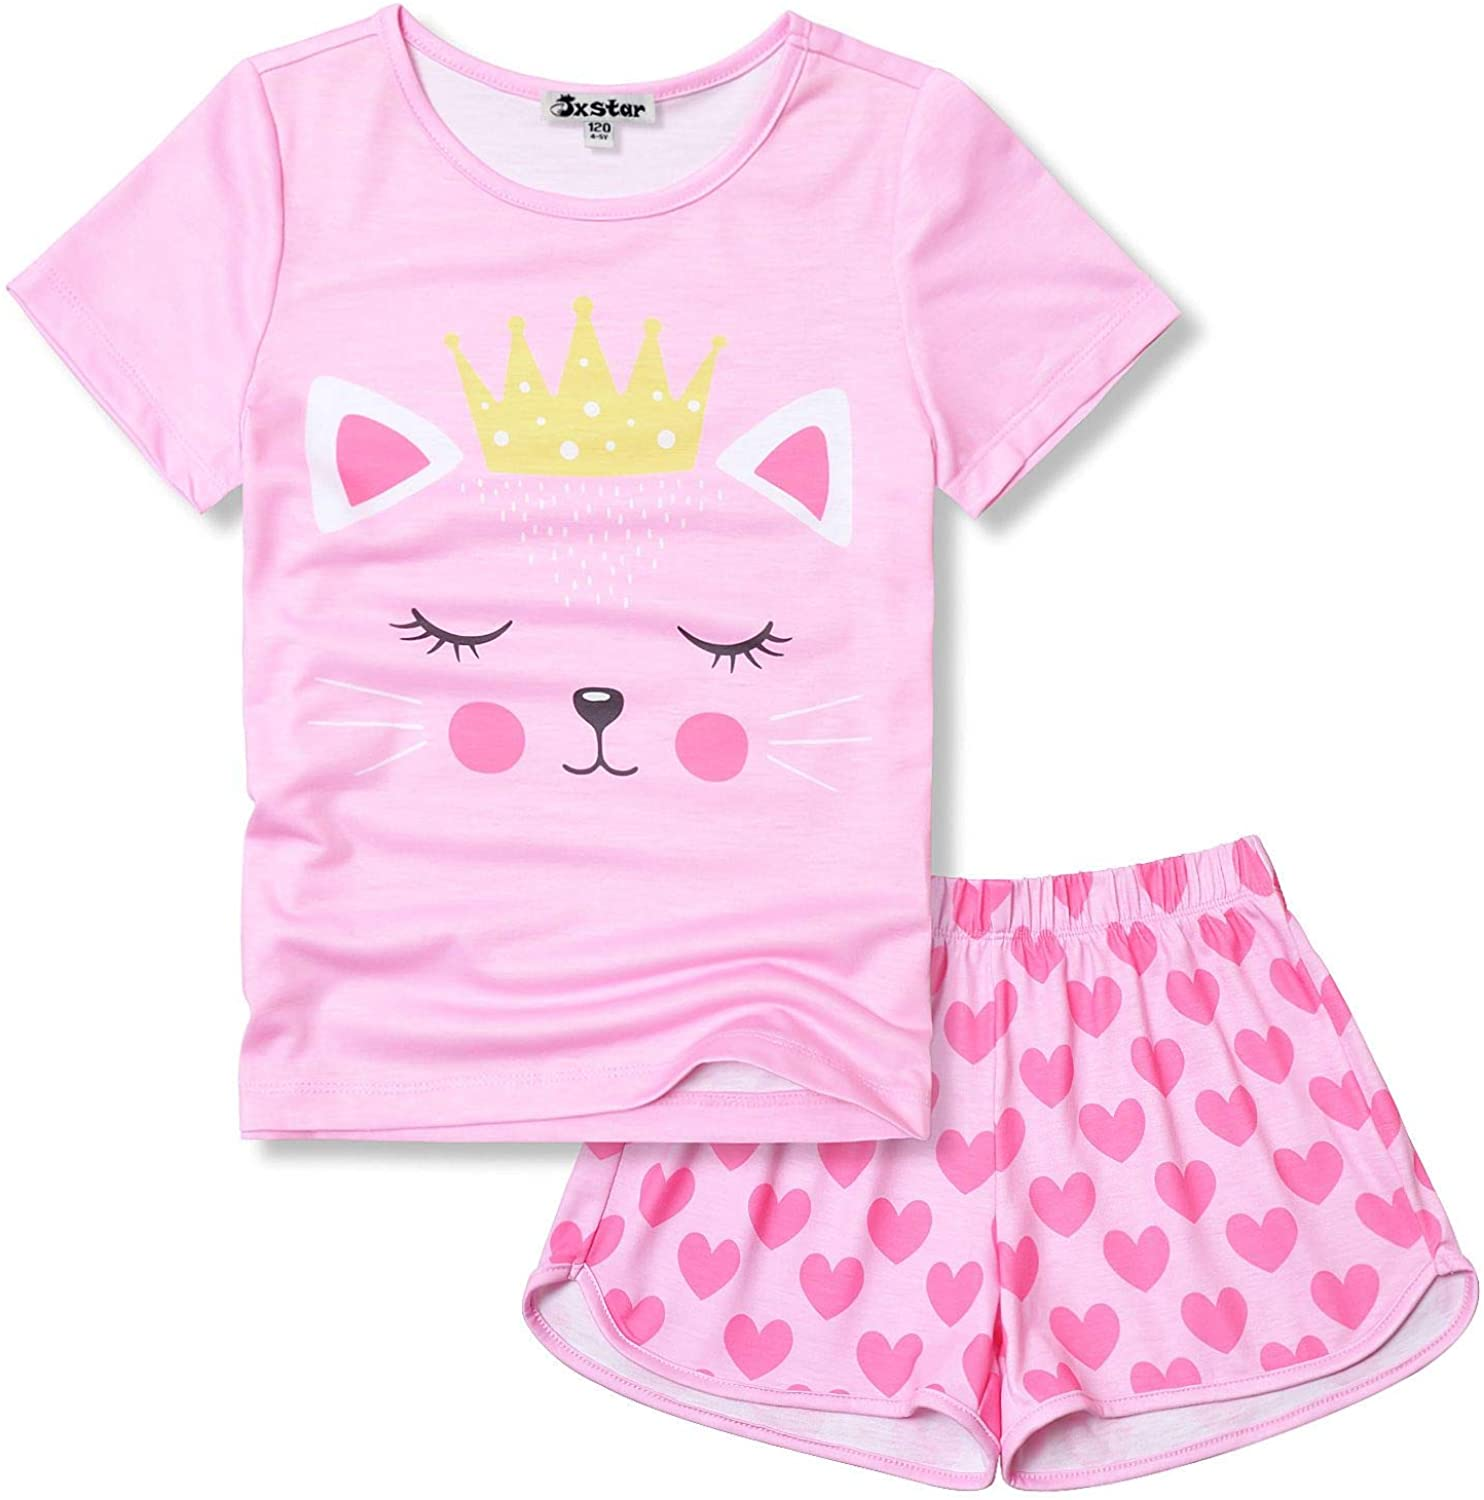 Jxstar Pajamas Sets for Girls Unicorn Pjs Little Kids Summer Cotton Sleepwear